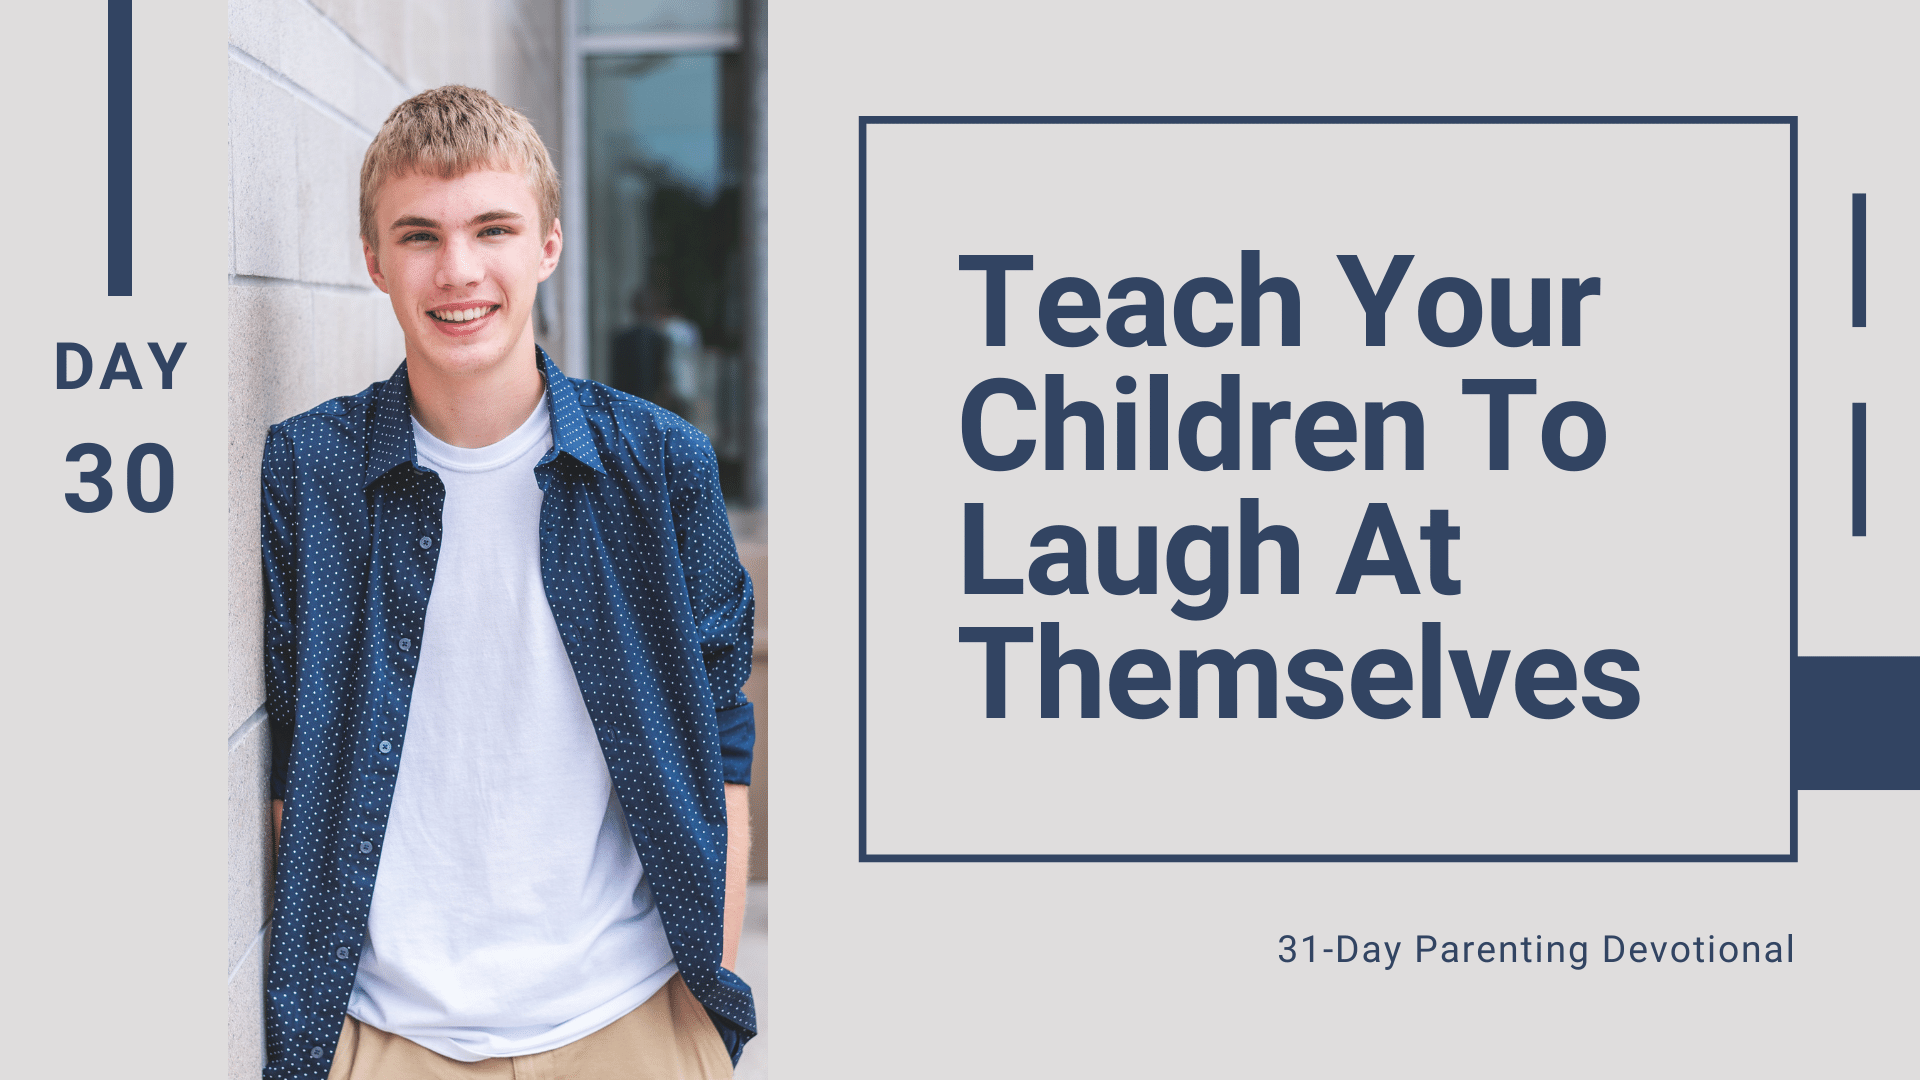 30 Teach Your Children To Laugh At Themselves, Day 30